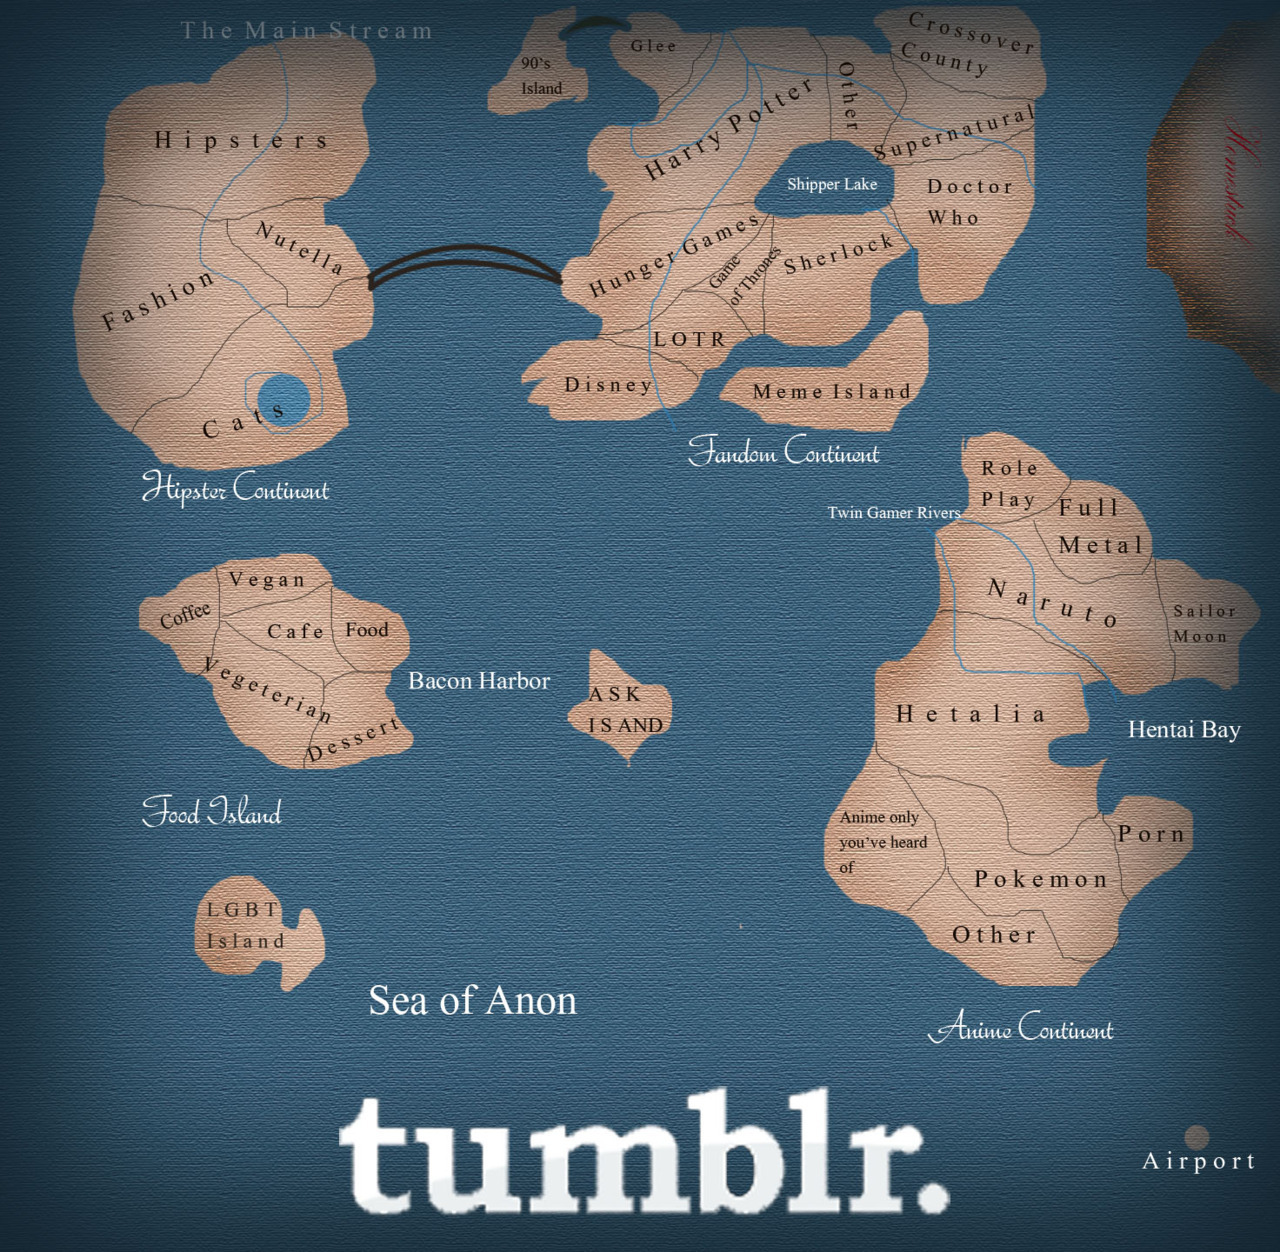 Hipster Fandom Food Anime Long ago, the four nations of tumblr lived together in harmony. Then, everything changed when the Homestuck fandom attacked.